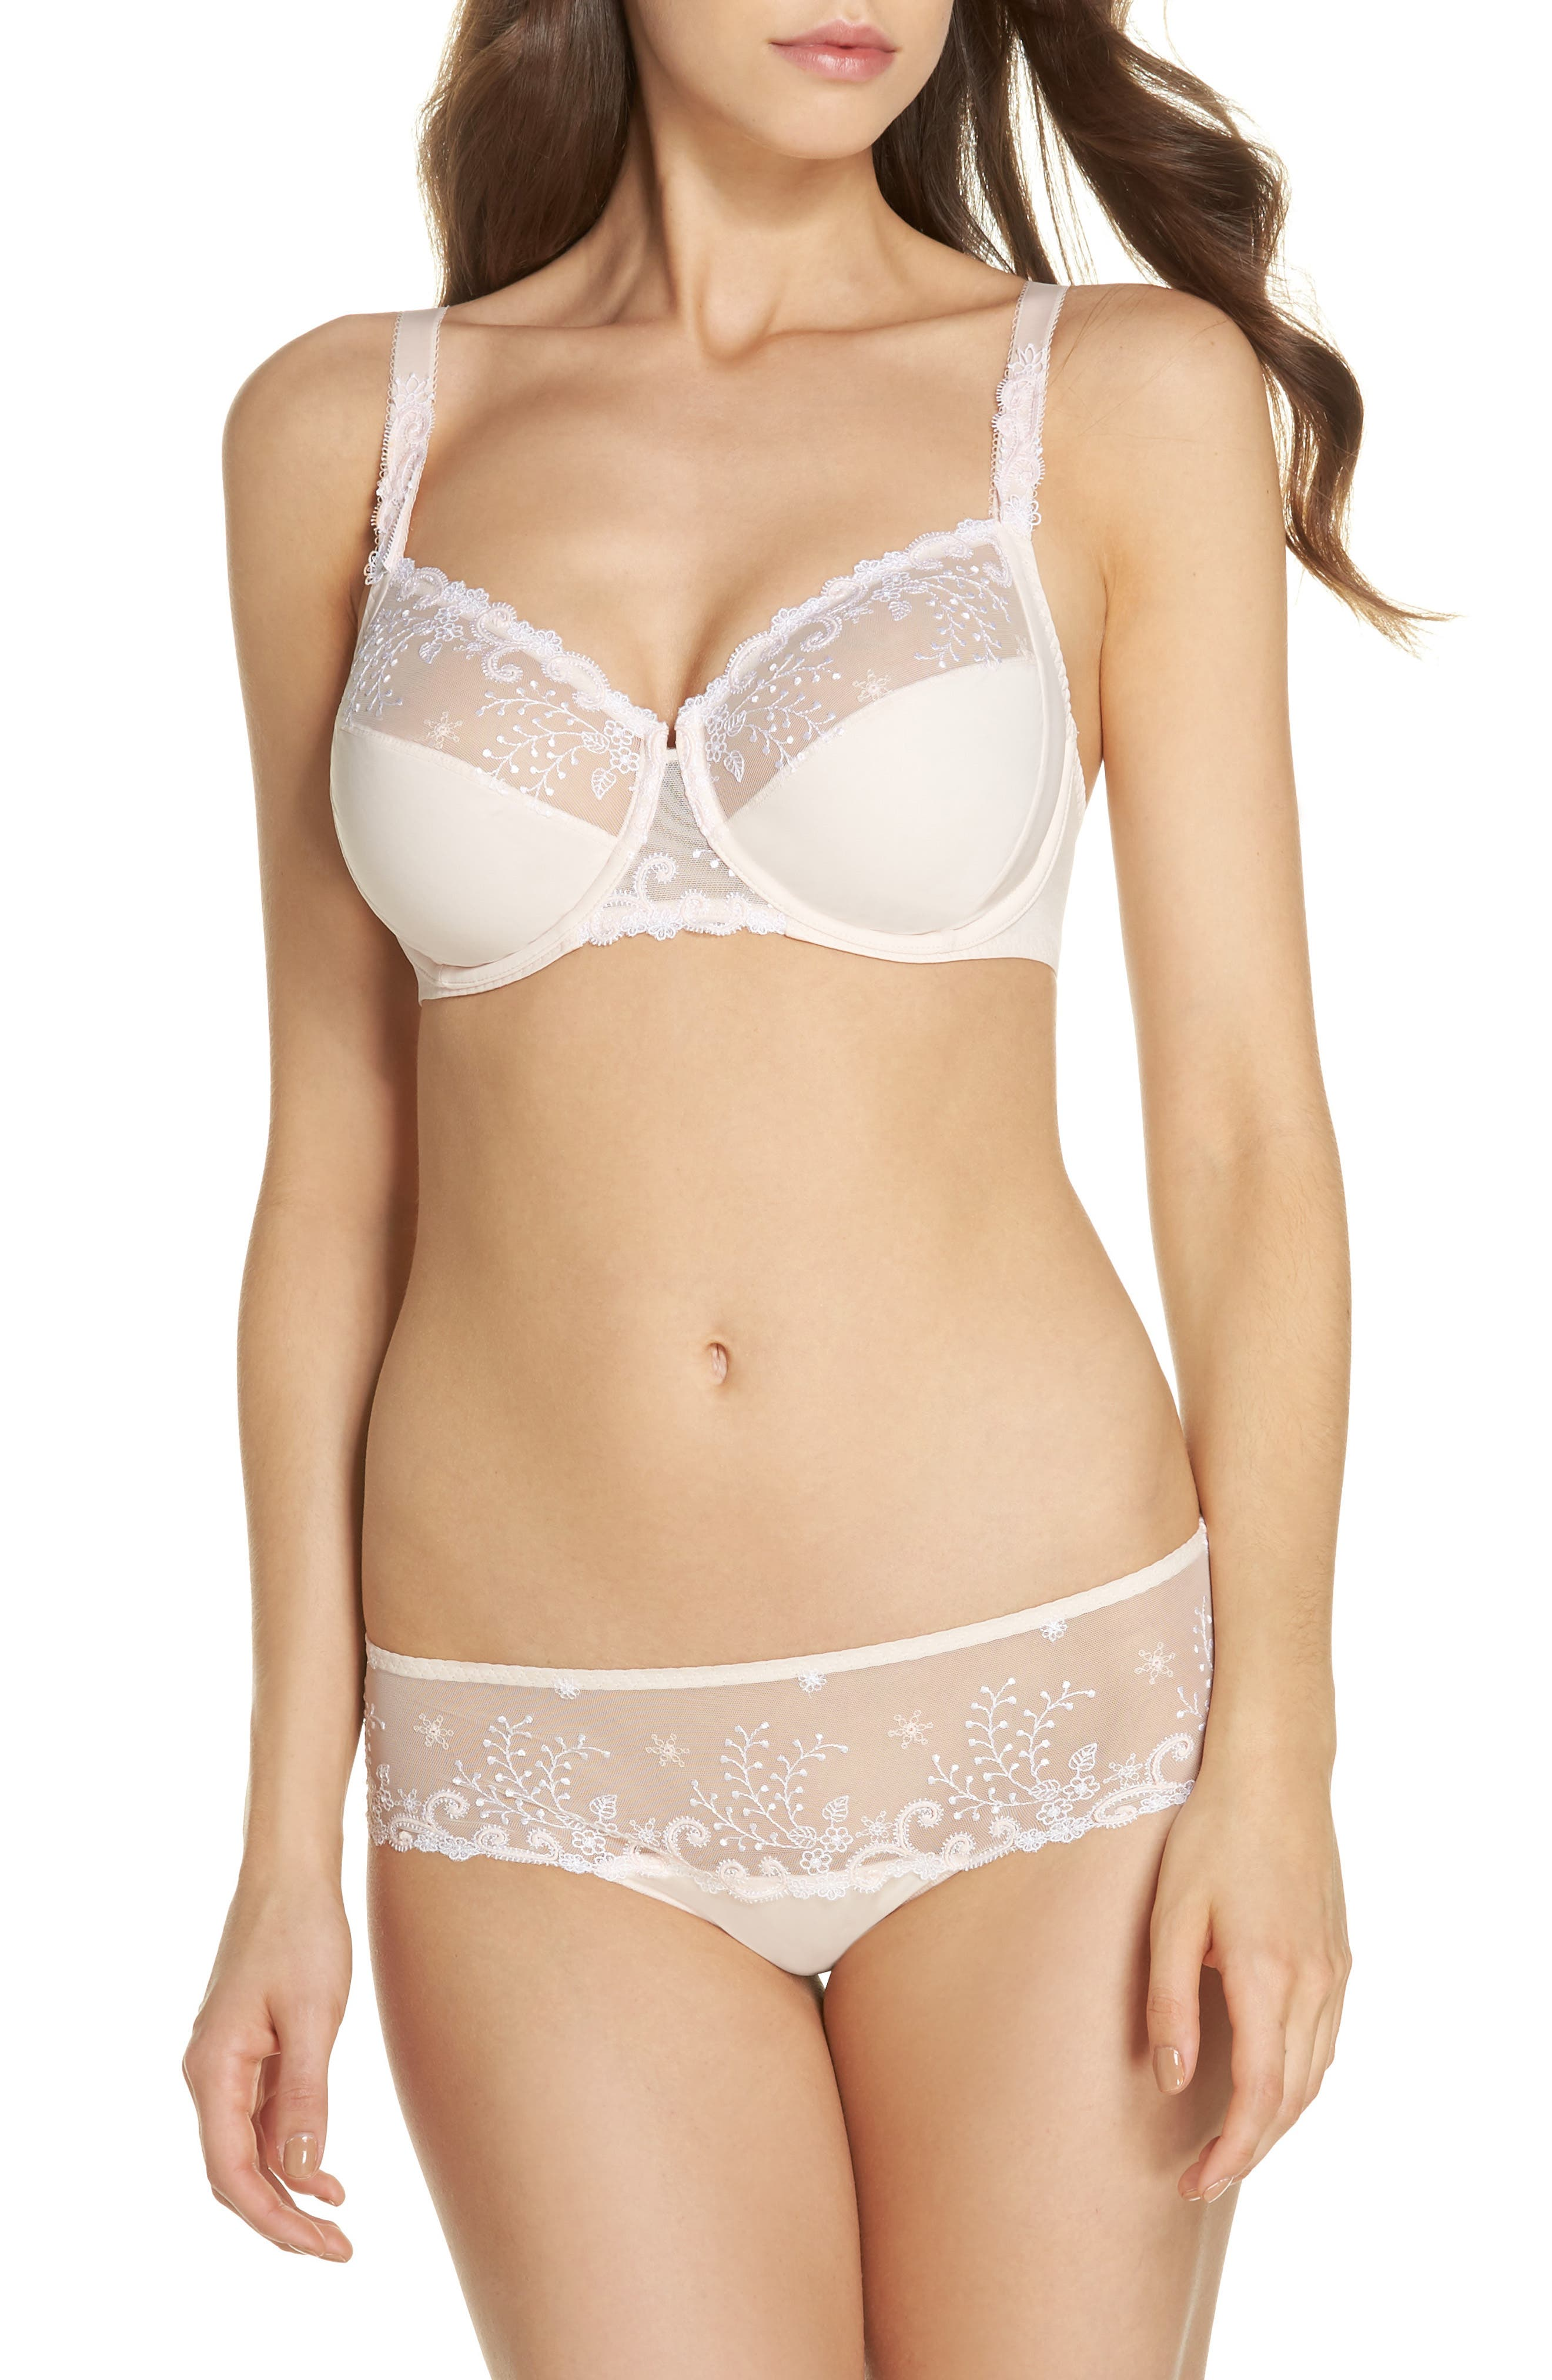 'Delice' Embroidered Underwire Bra,                             Alternate thumbnail 5, color,                             Blush